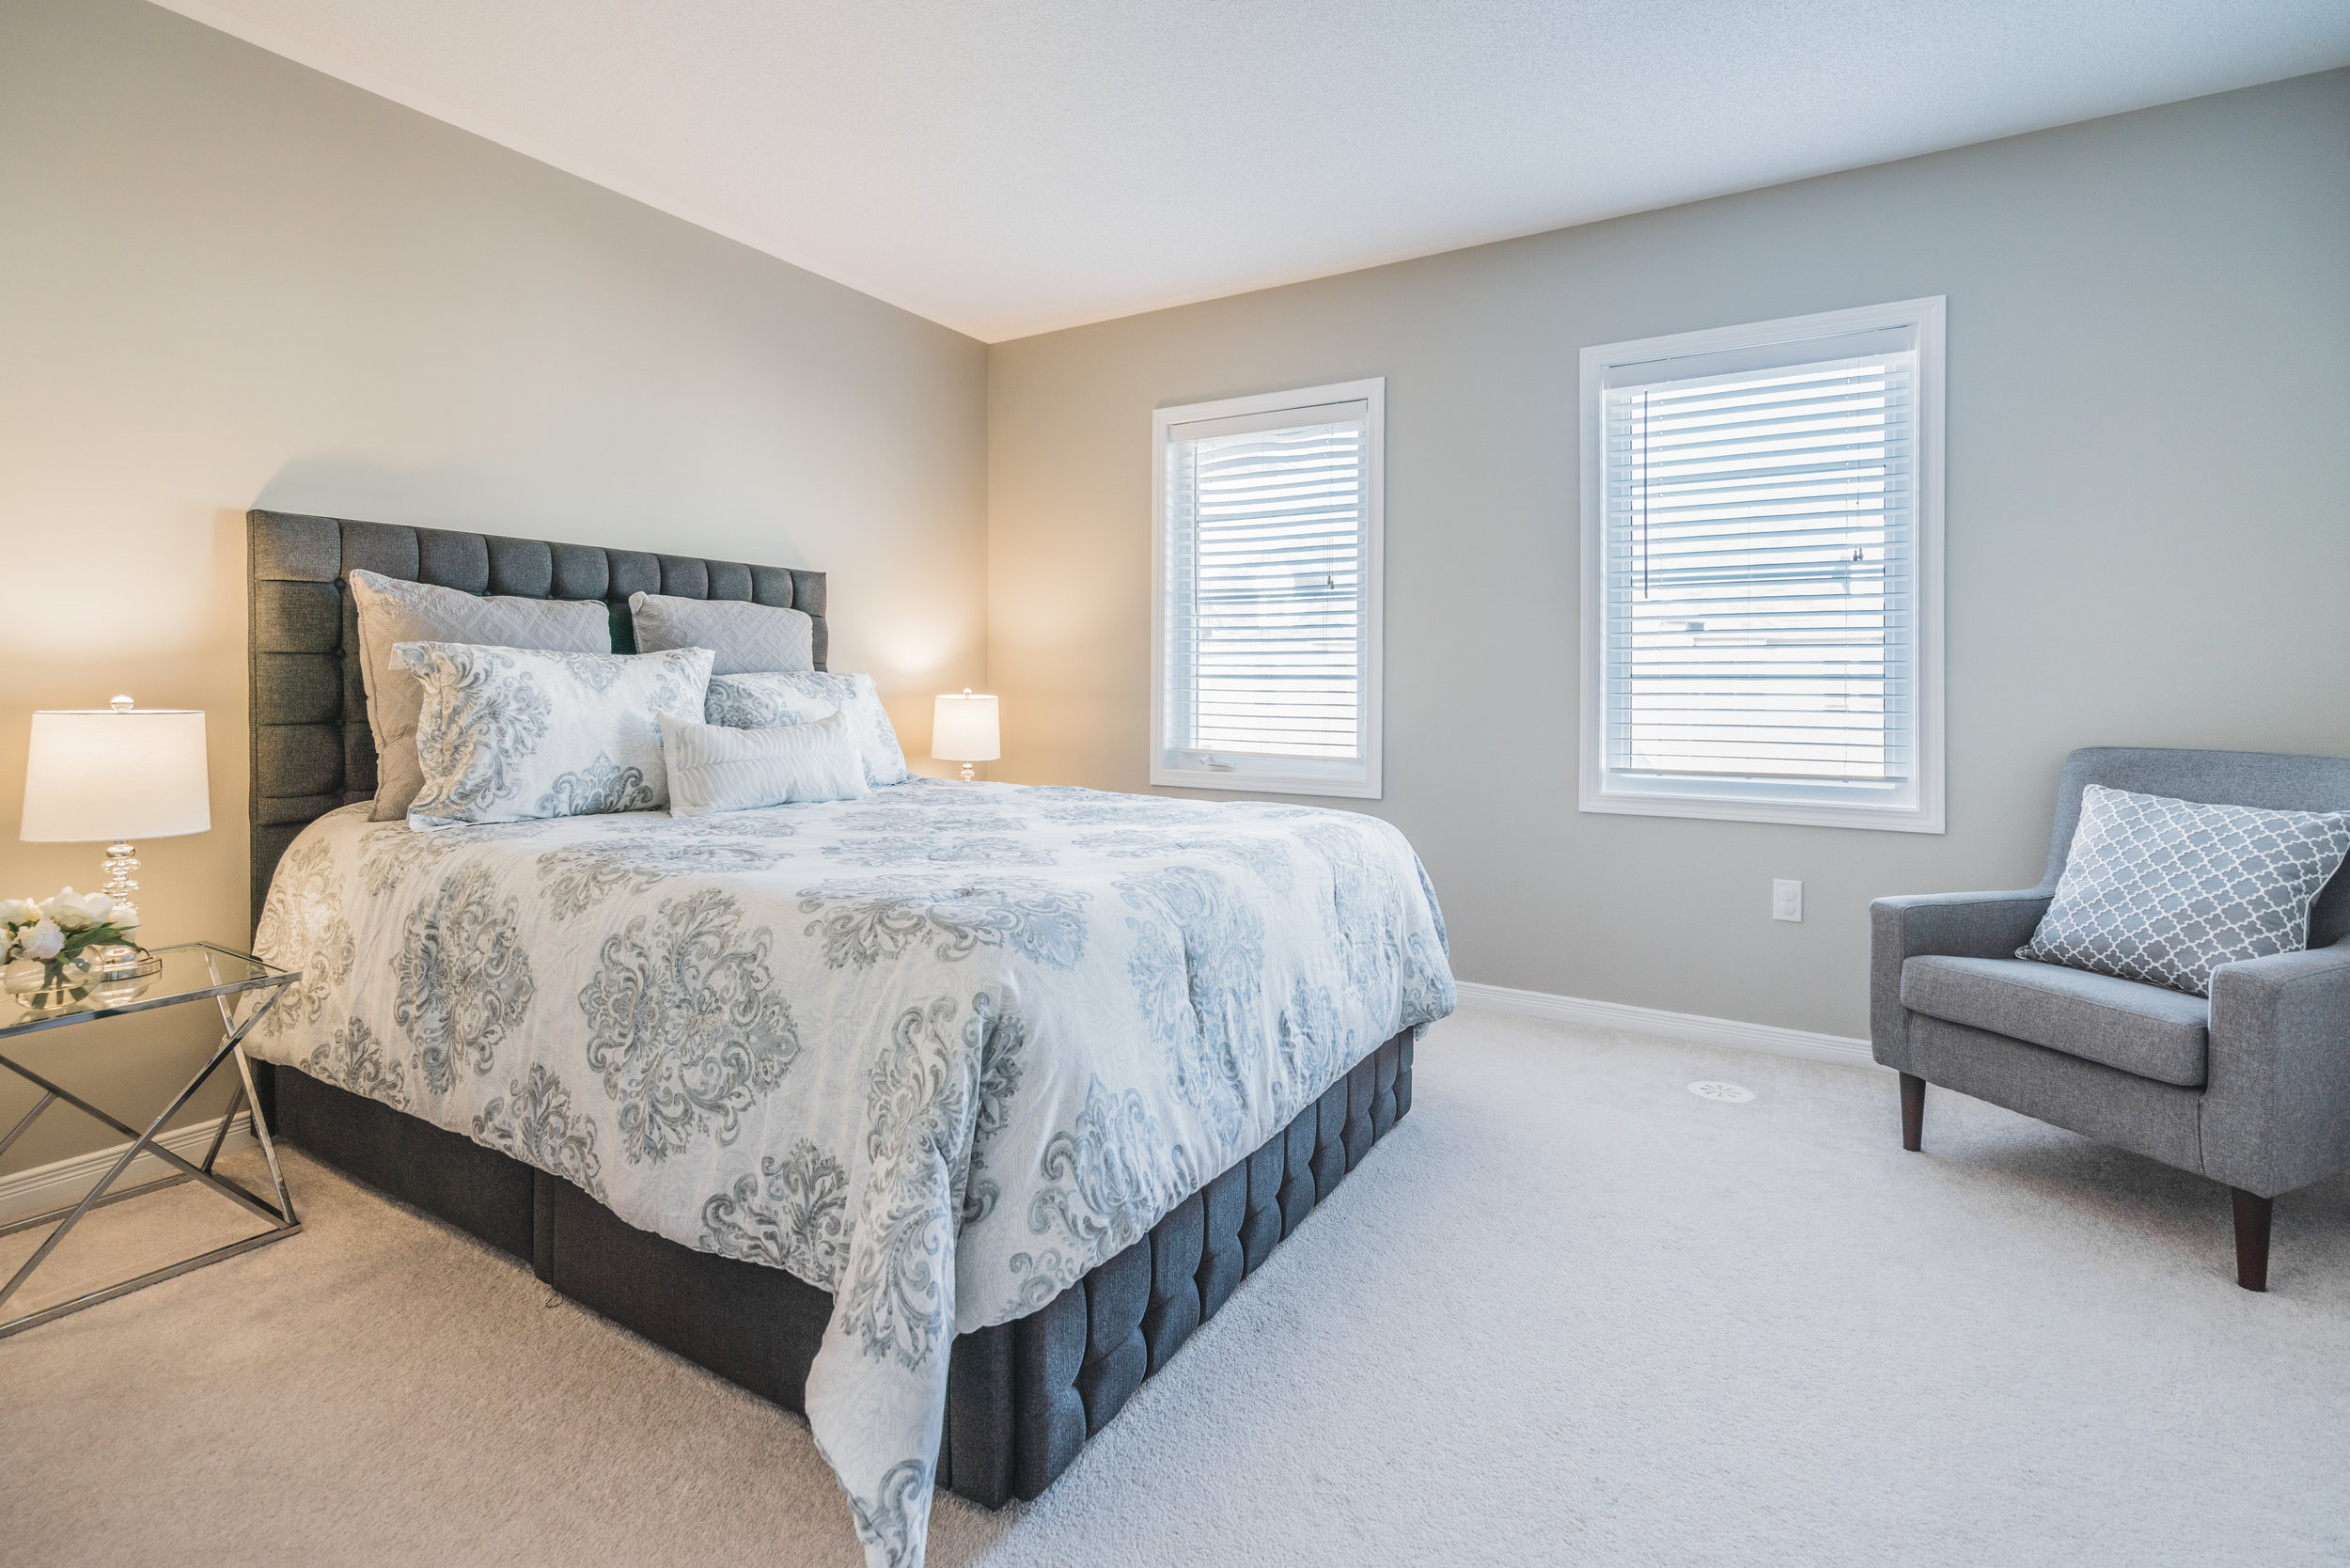 Beehive Markham occupied home staging home stager | Classy Glam Staging 8